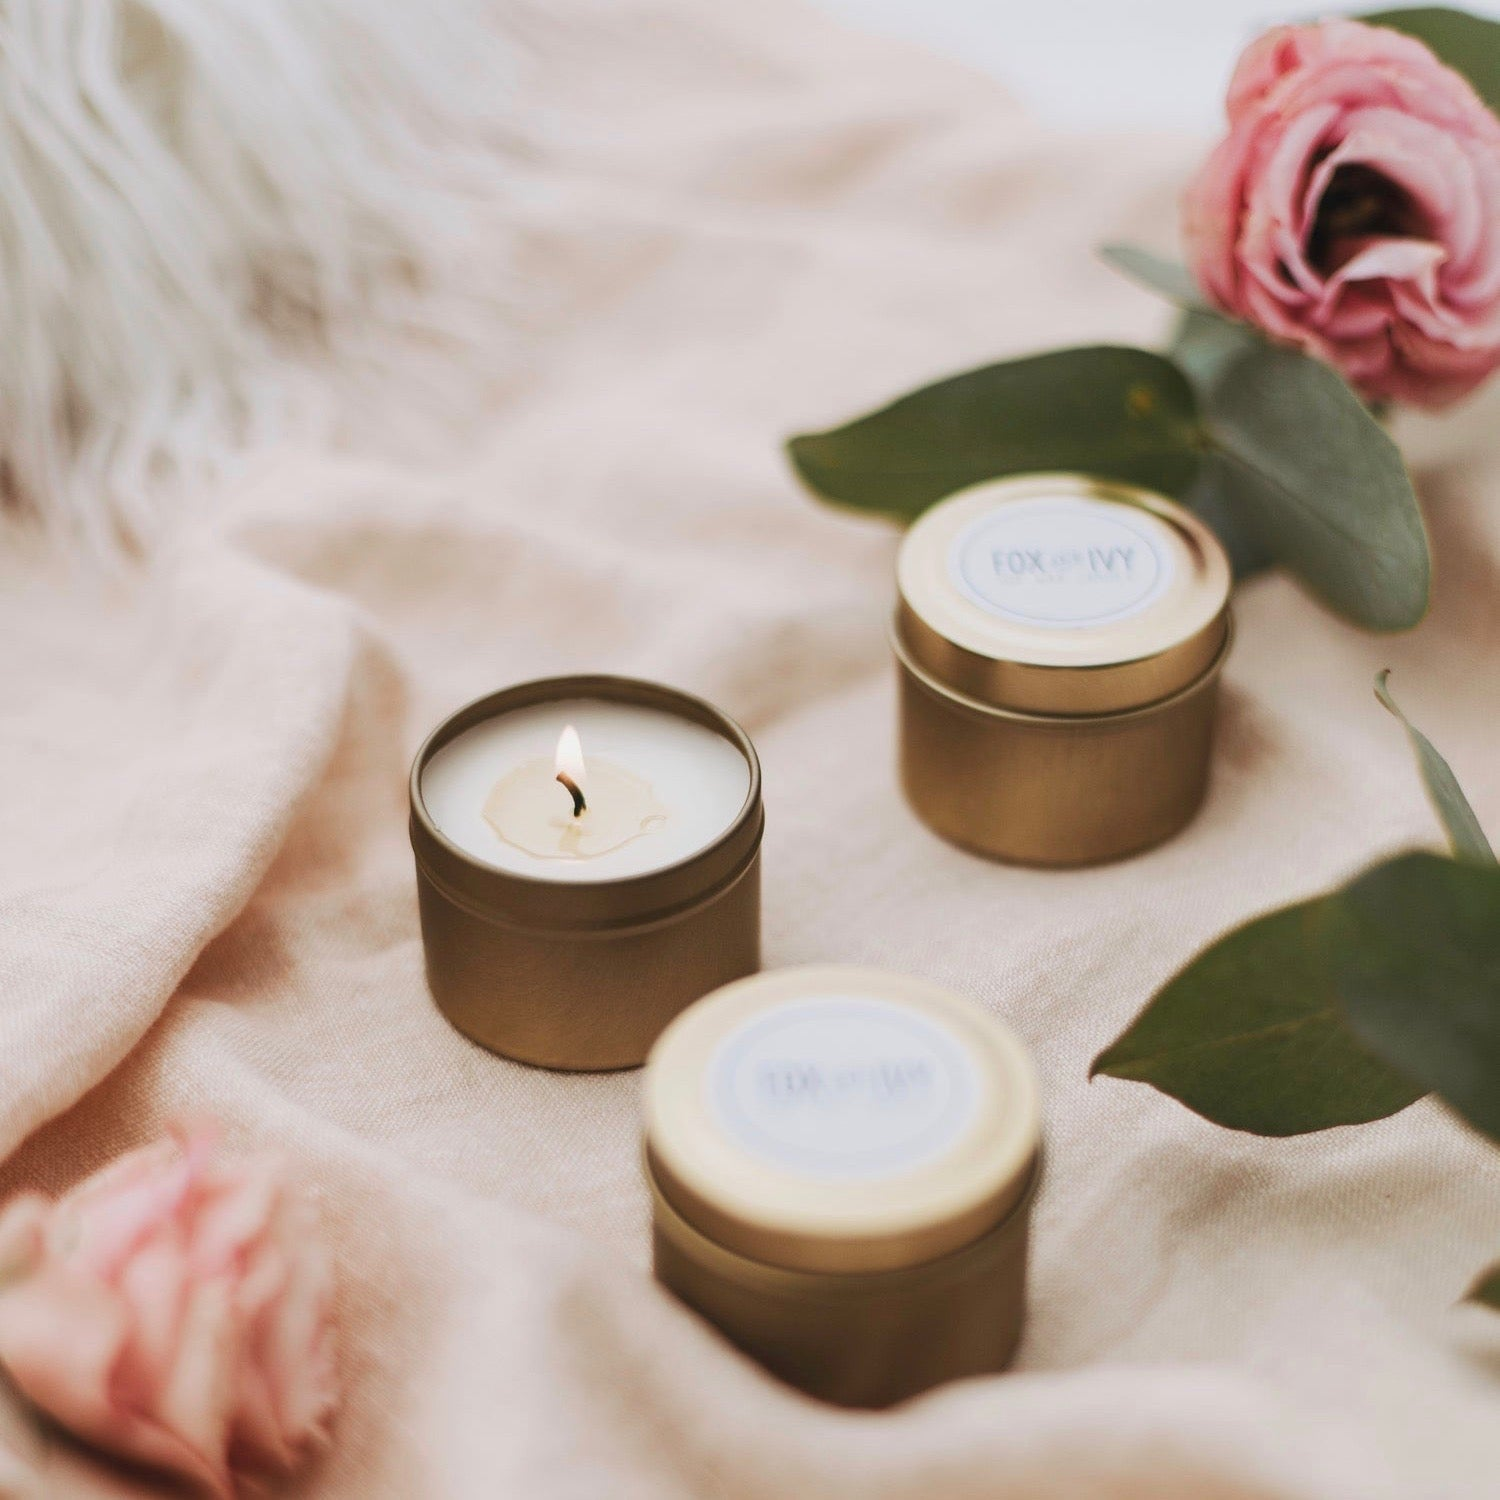 Mini Maple & Caramel Candle by Fox and Ivy